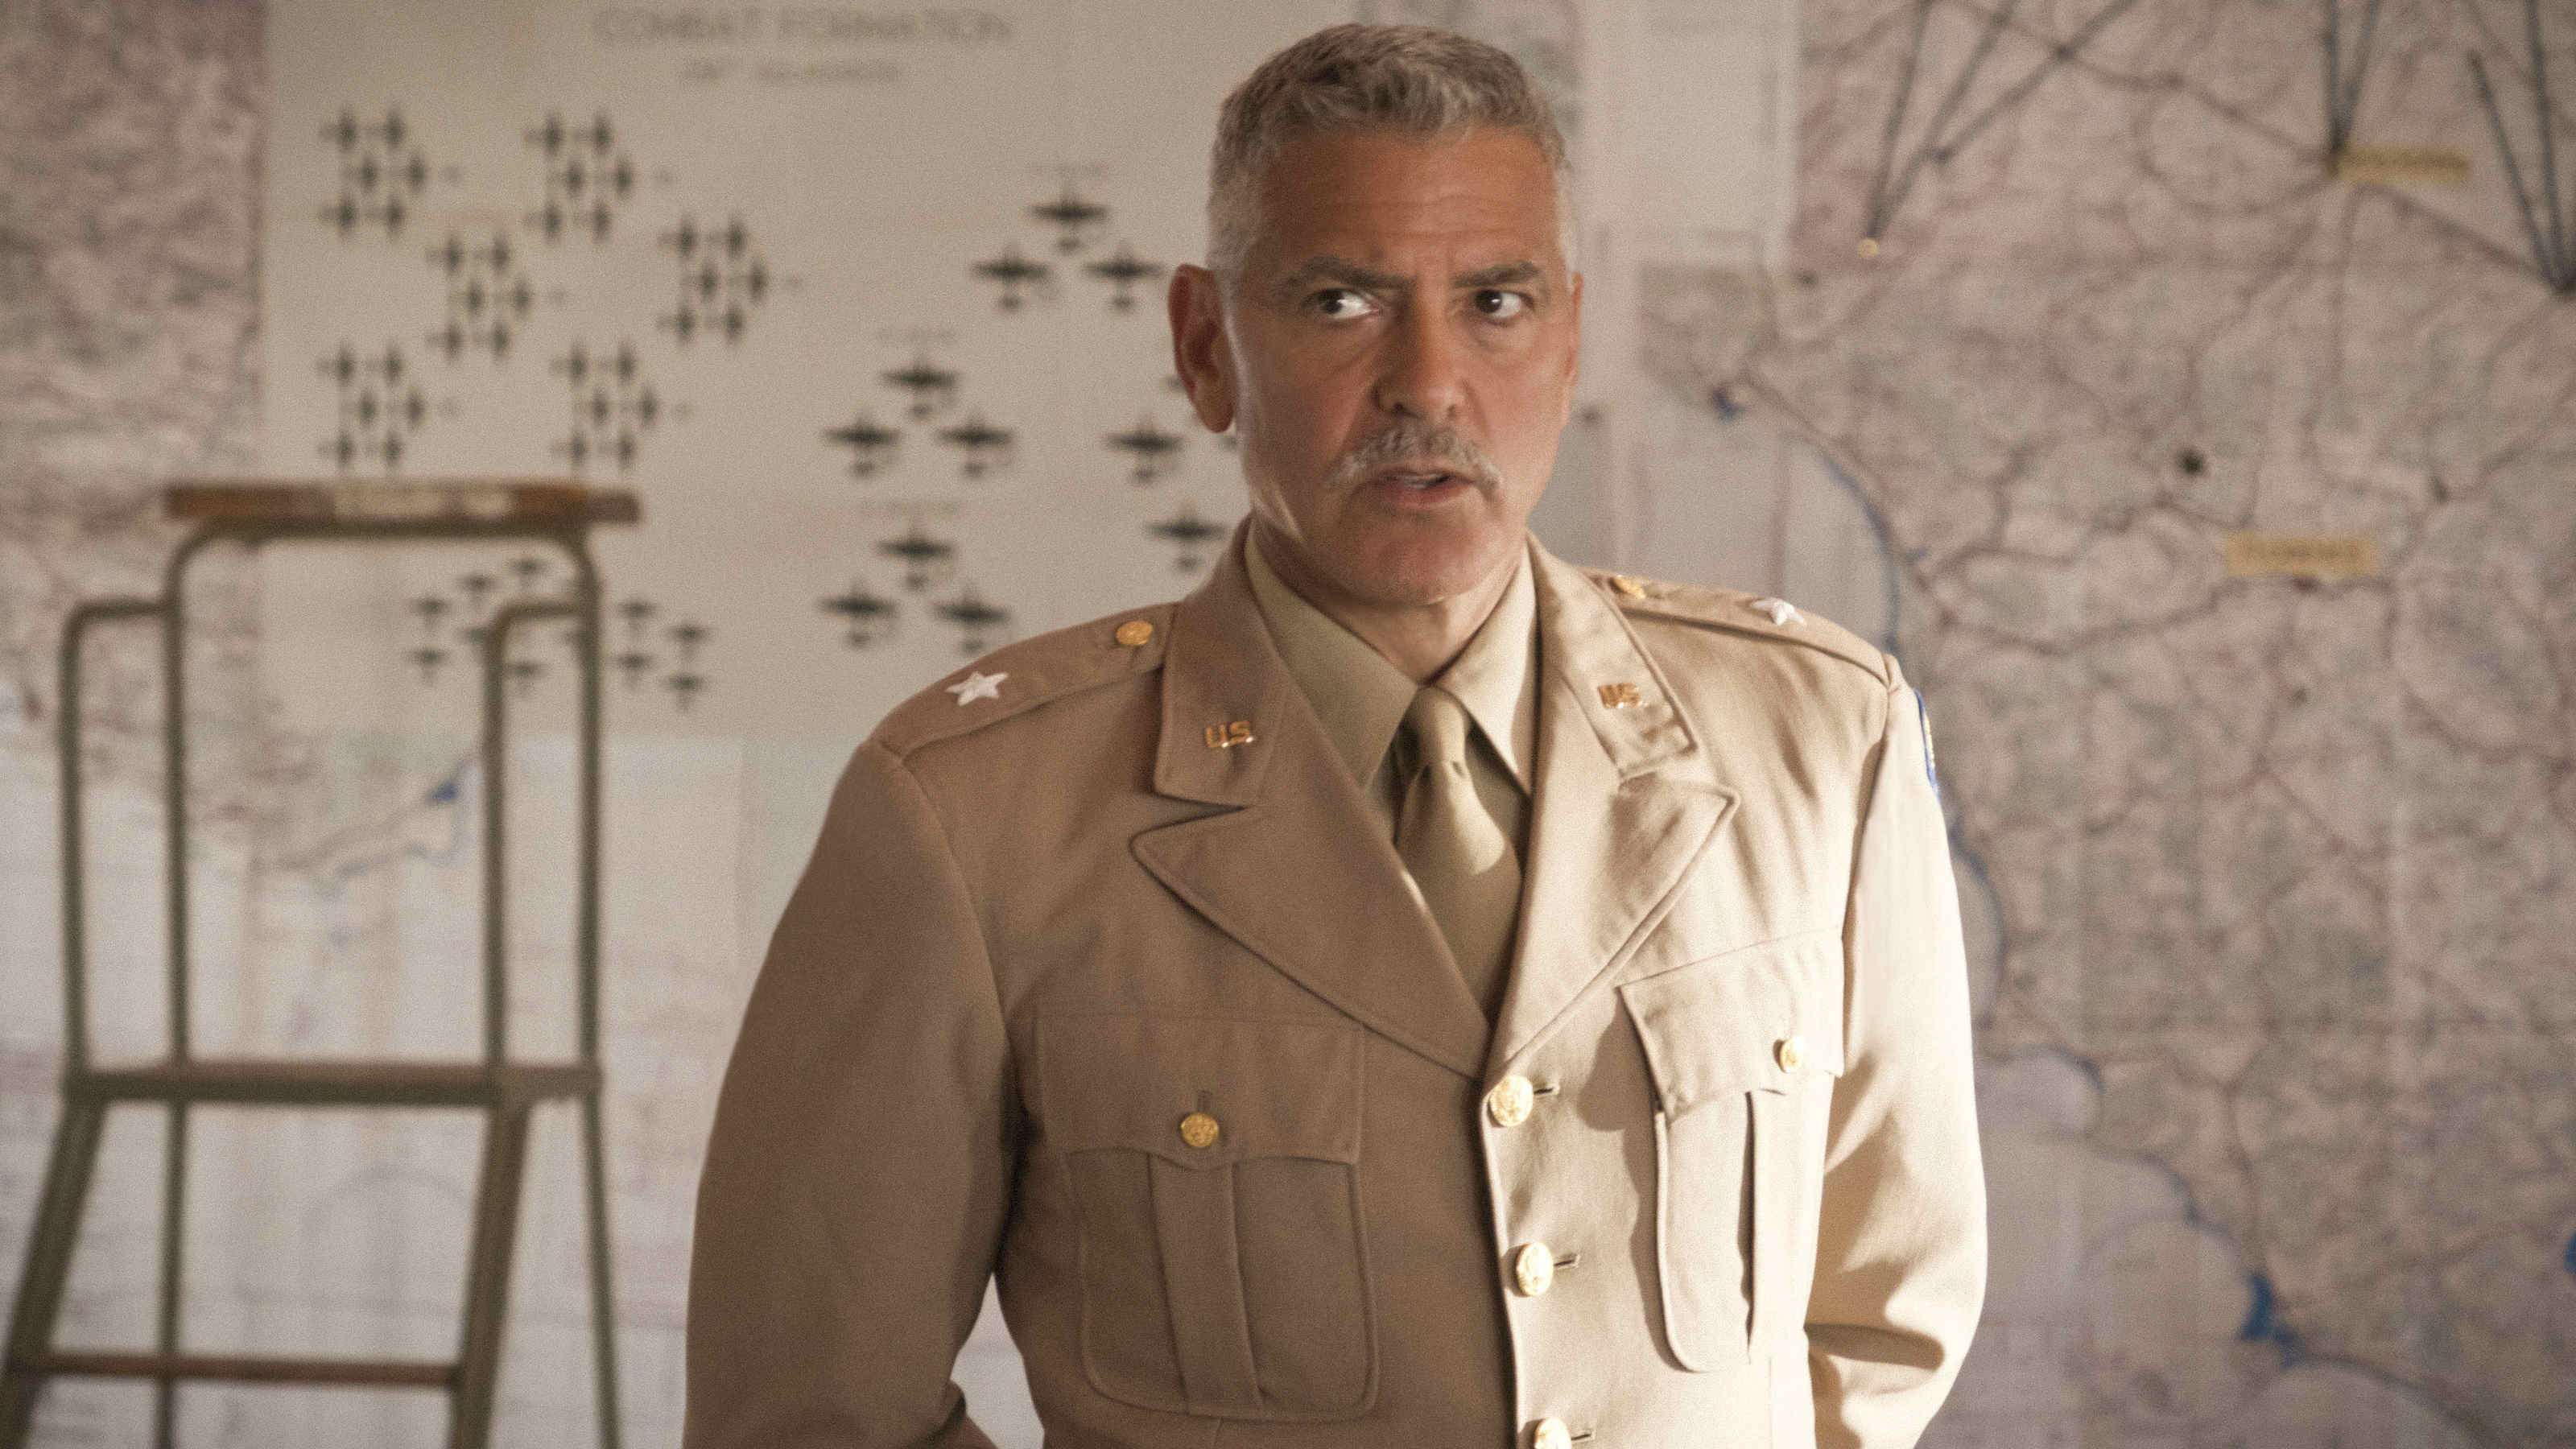 Scott D. Pierce: George Clooney's 'Catch-22' is terrific, and he's still the same great guy